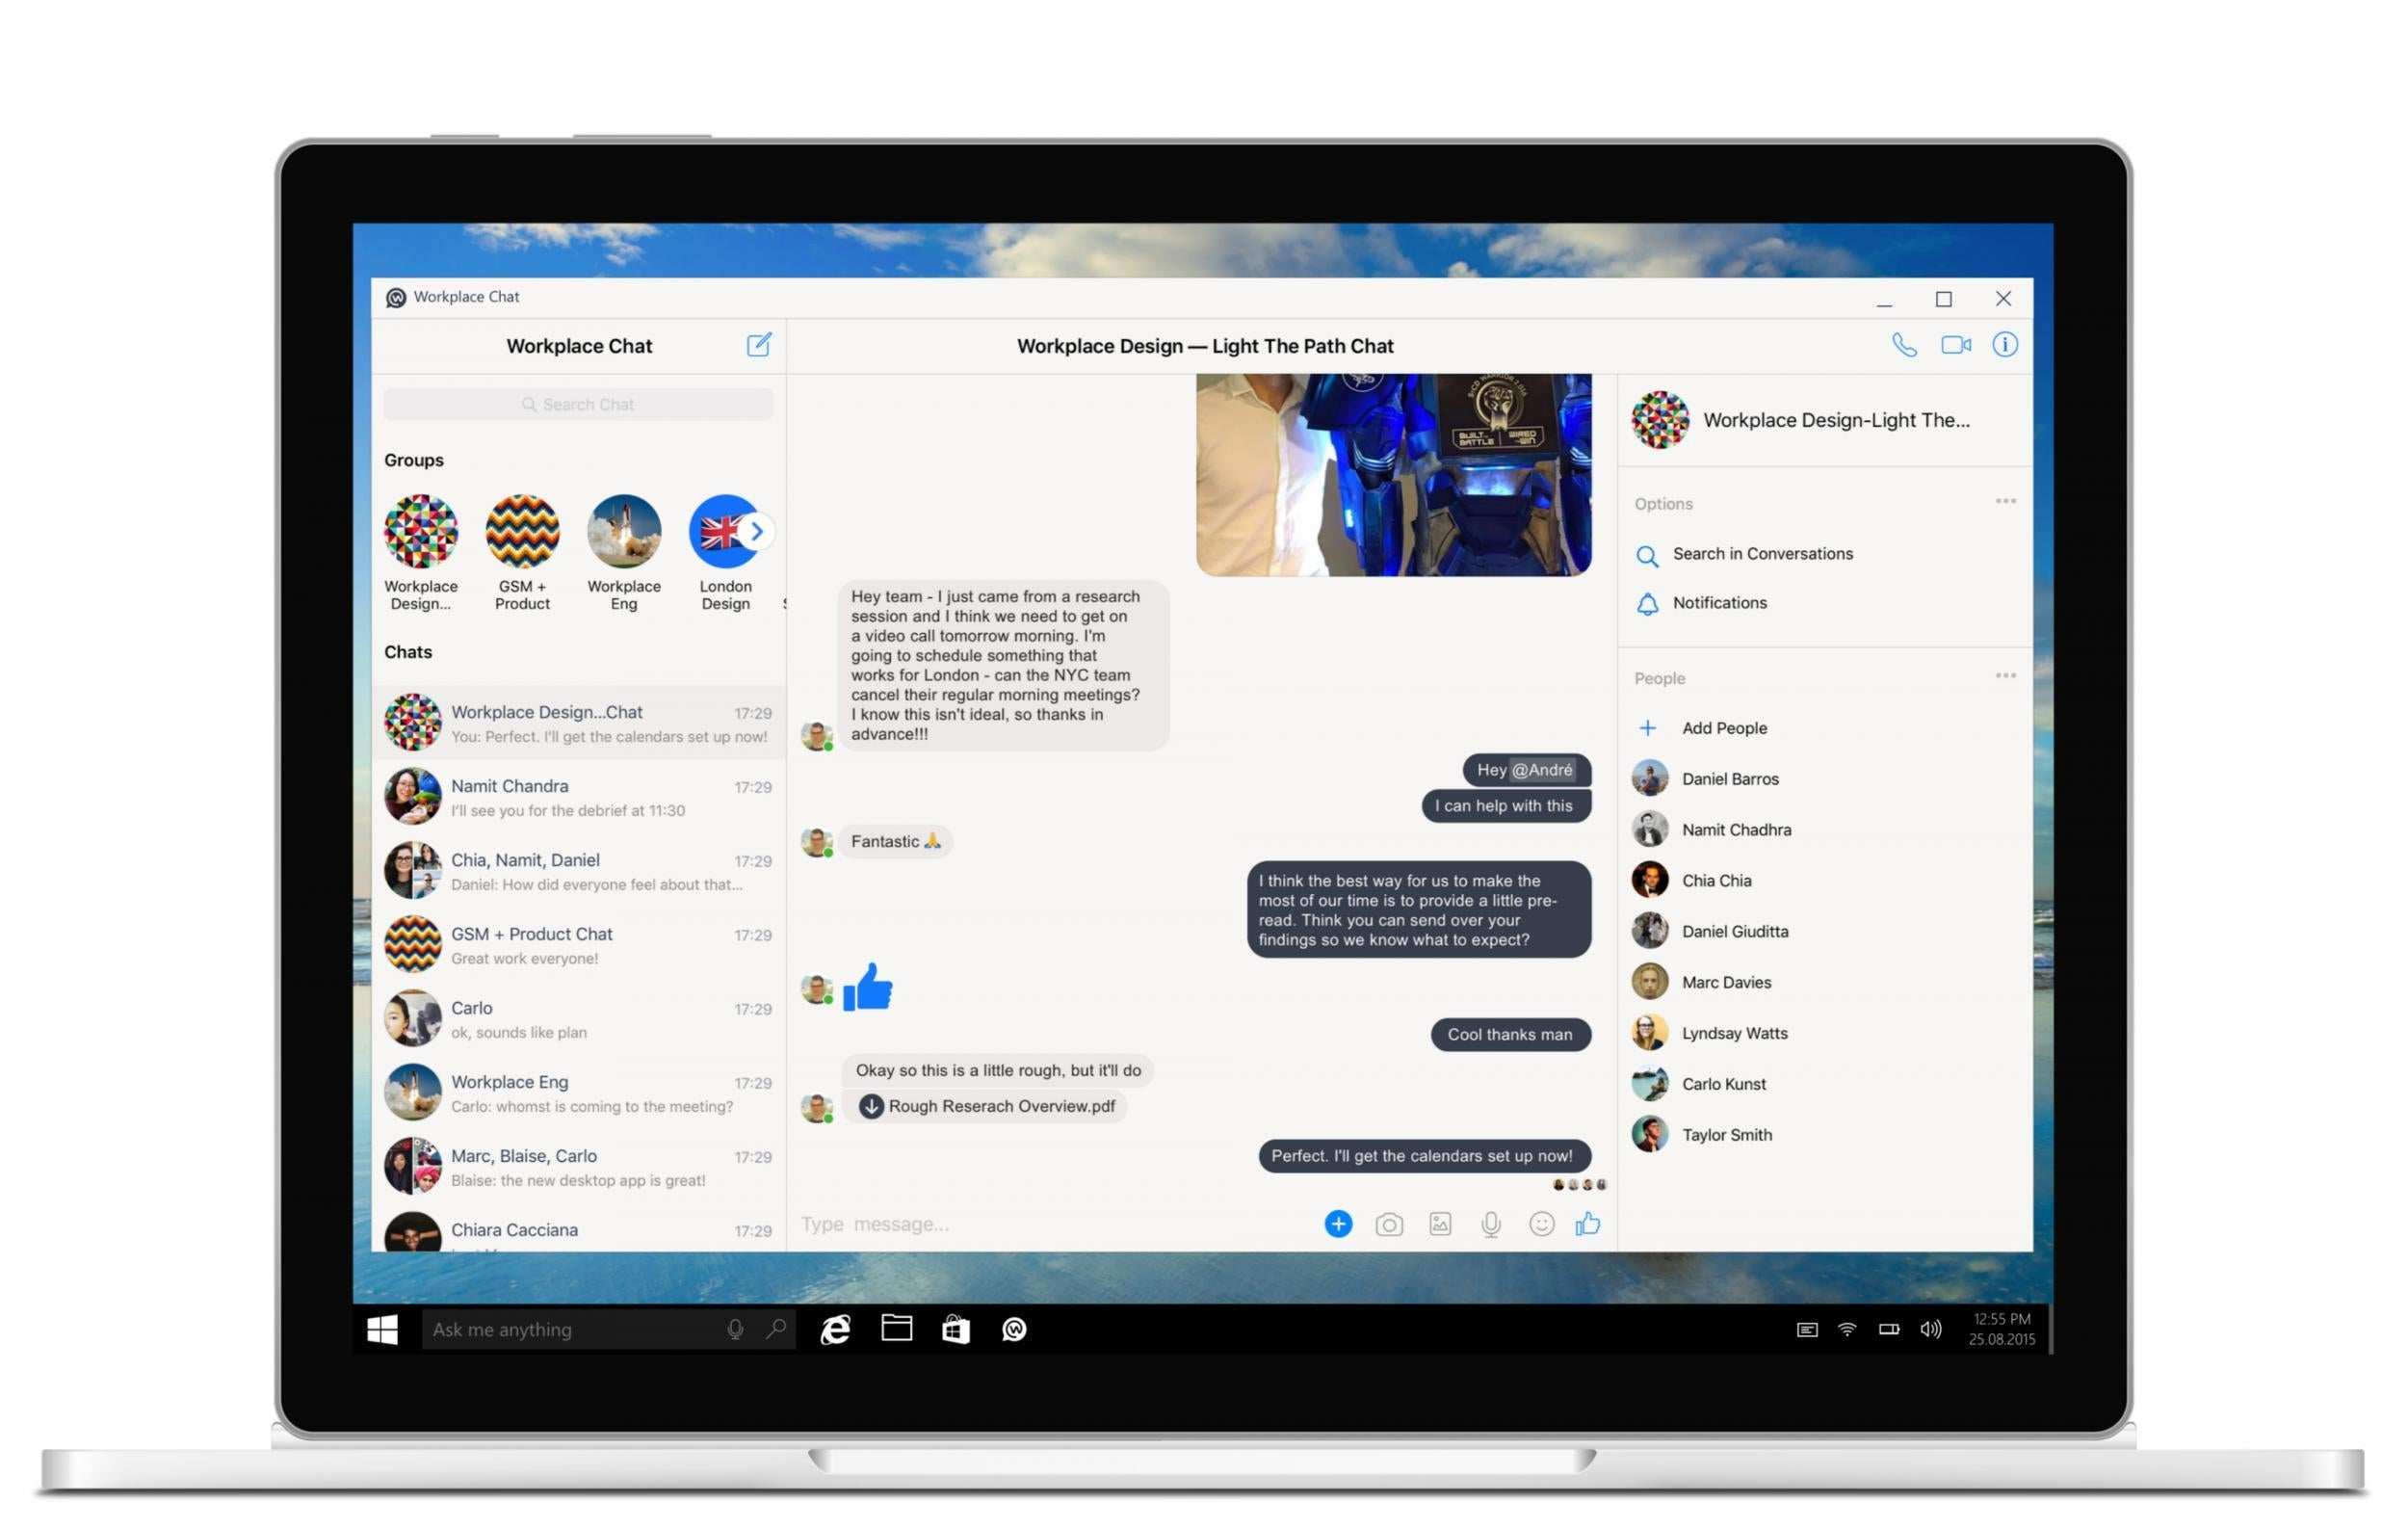 Facebook launches chat app designed to make you do more work